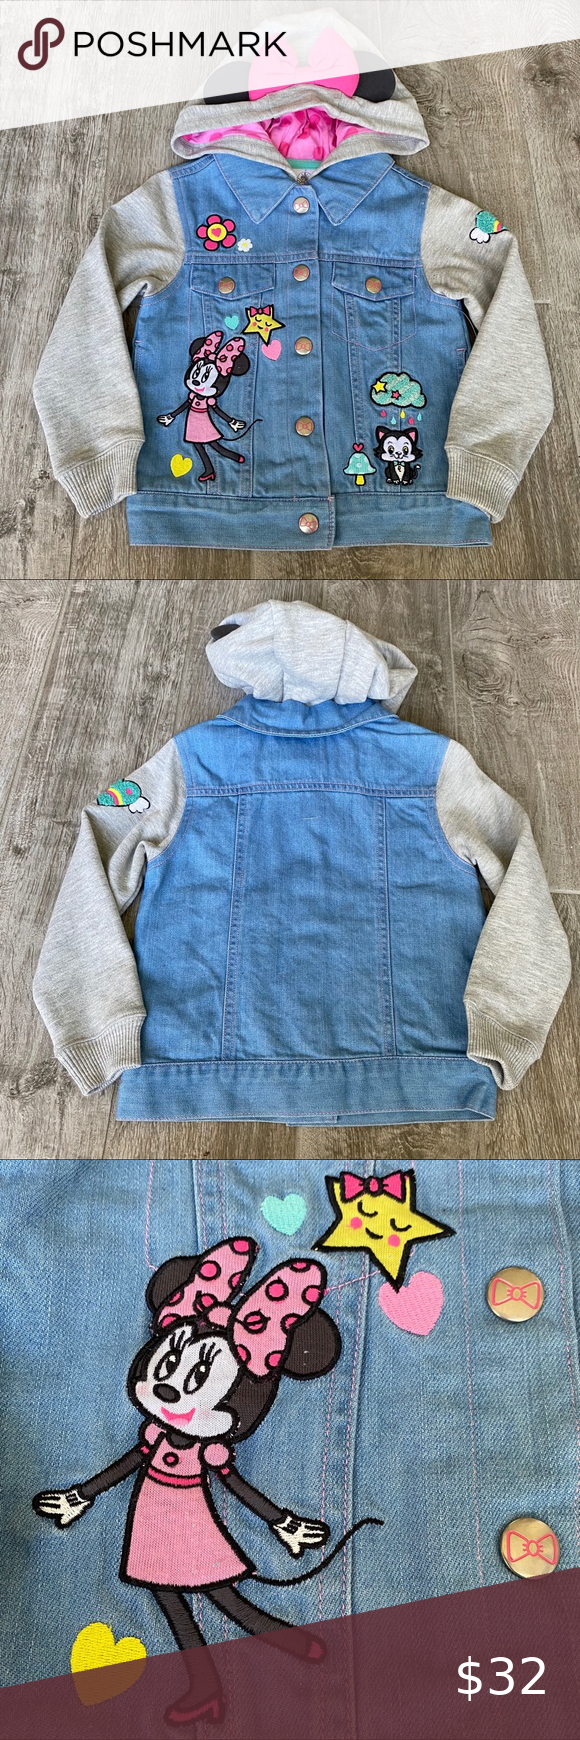 Nwt Disney Minnie Mouse Toddler Jean Jacket 3t Toddler Jeans Jean Jacket Jackets [ 1740 x 580 Pixel ]